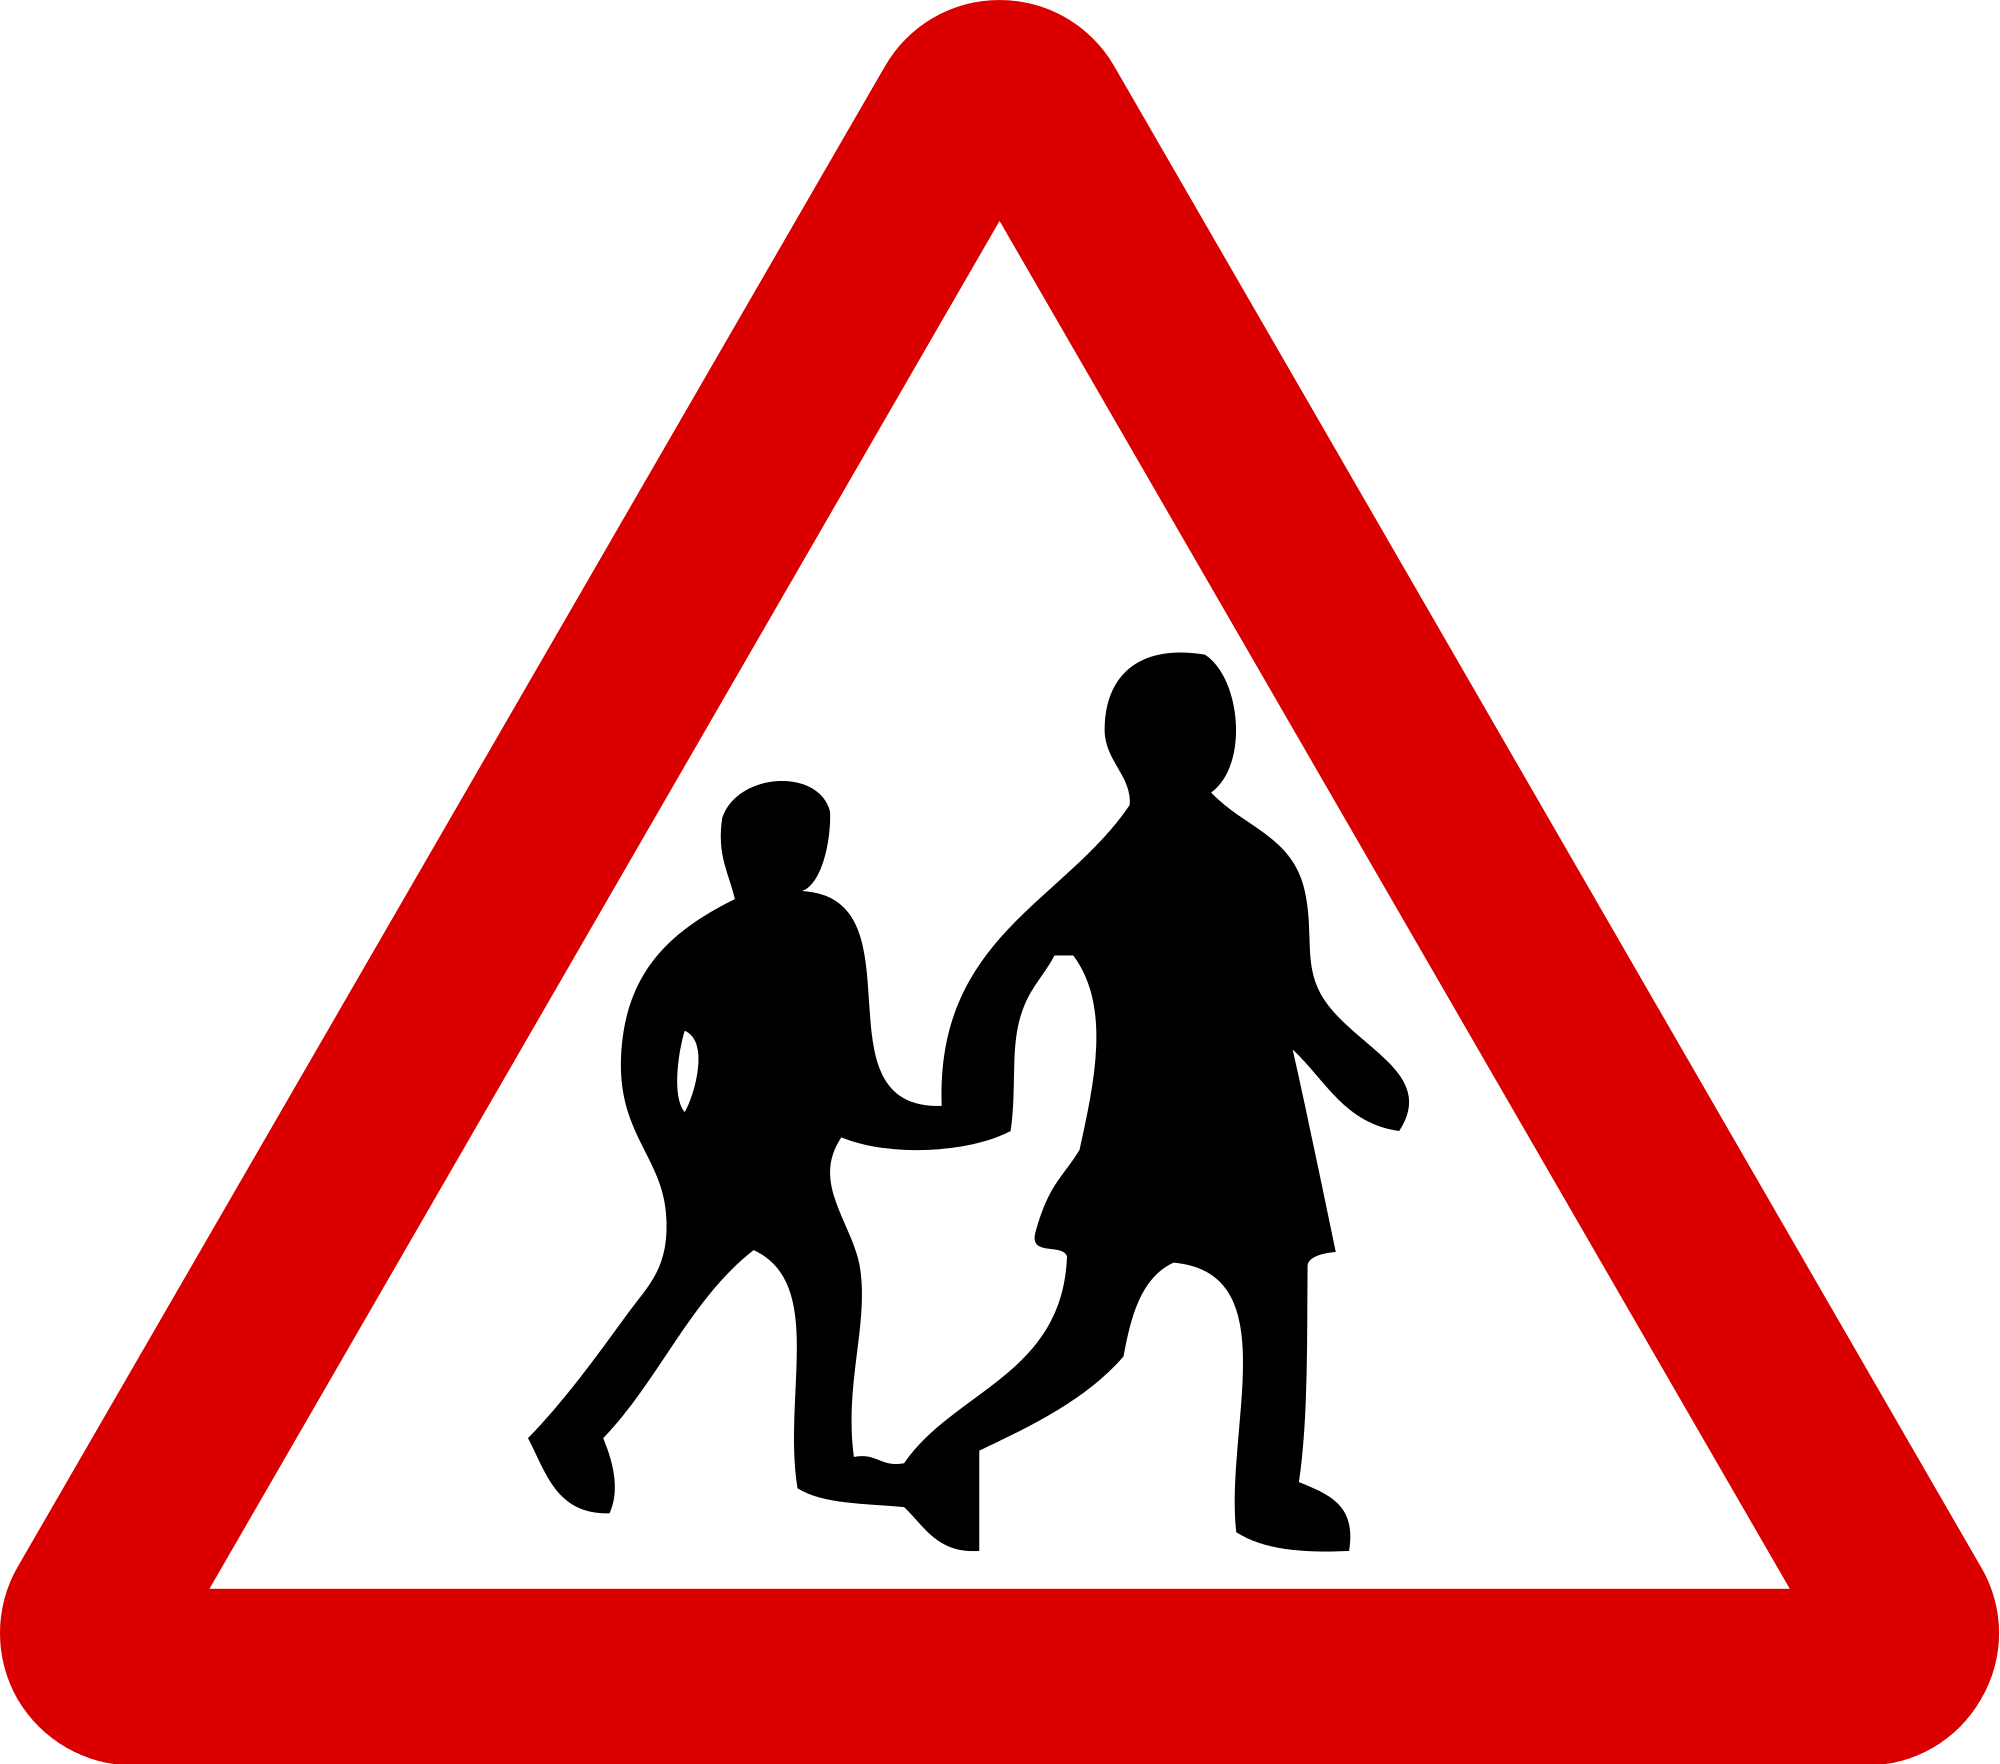 School signs clipart image transparent stock Road Sign Silhouette at GetDrawings.com | Free for personal use Road ... image transparent stock